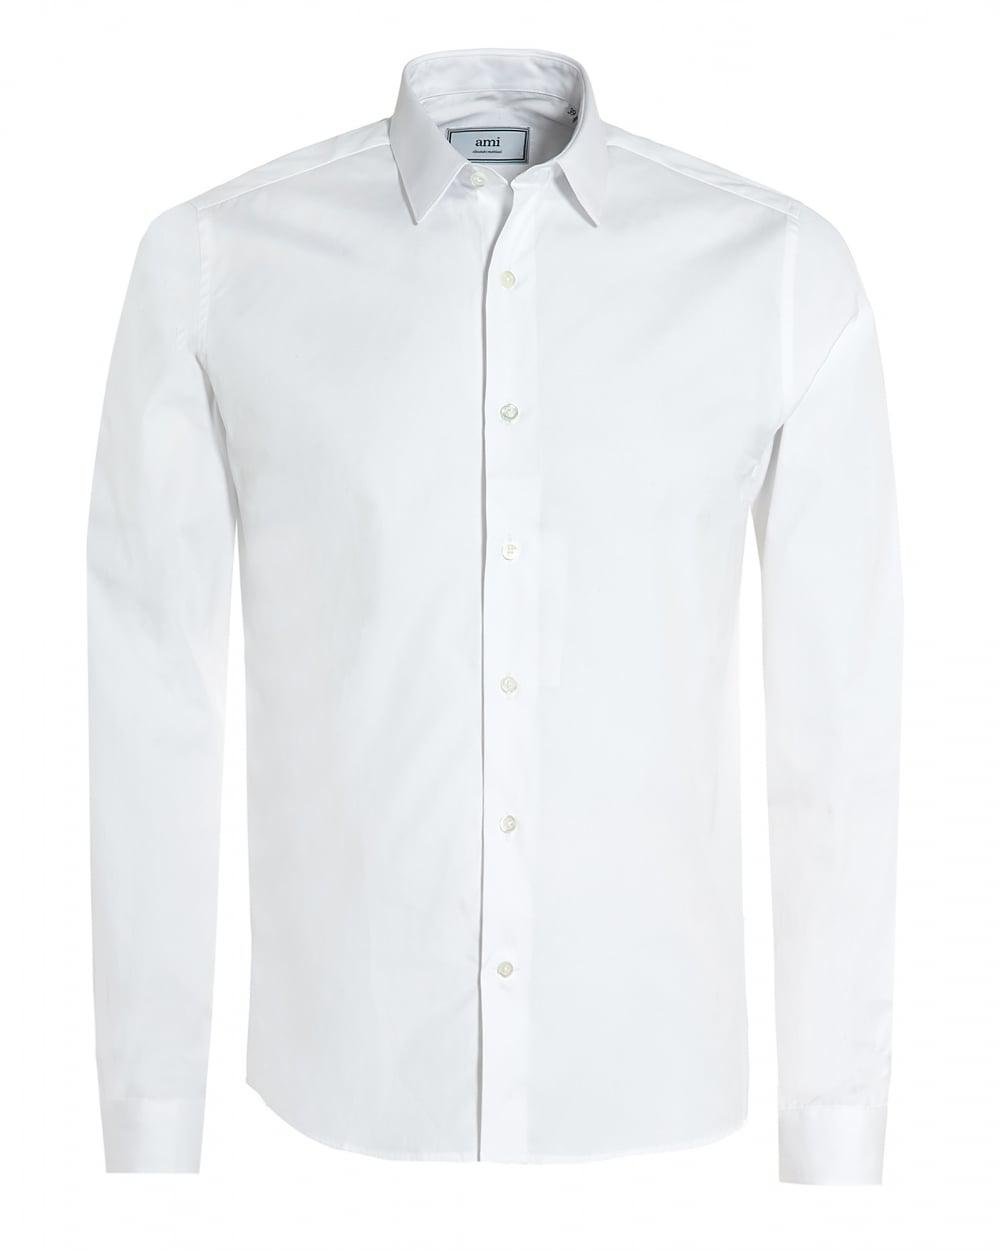 Ami plain white shirt regular fit poplin formal shirt in for Boys white formal shirt